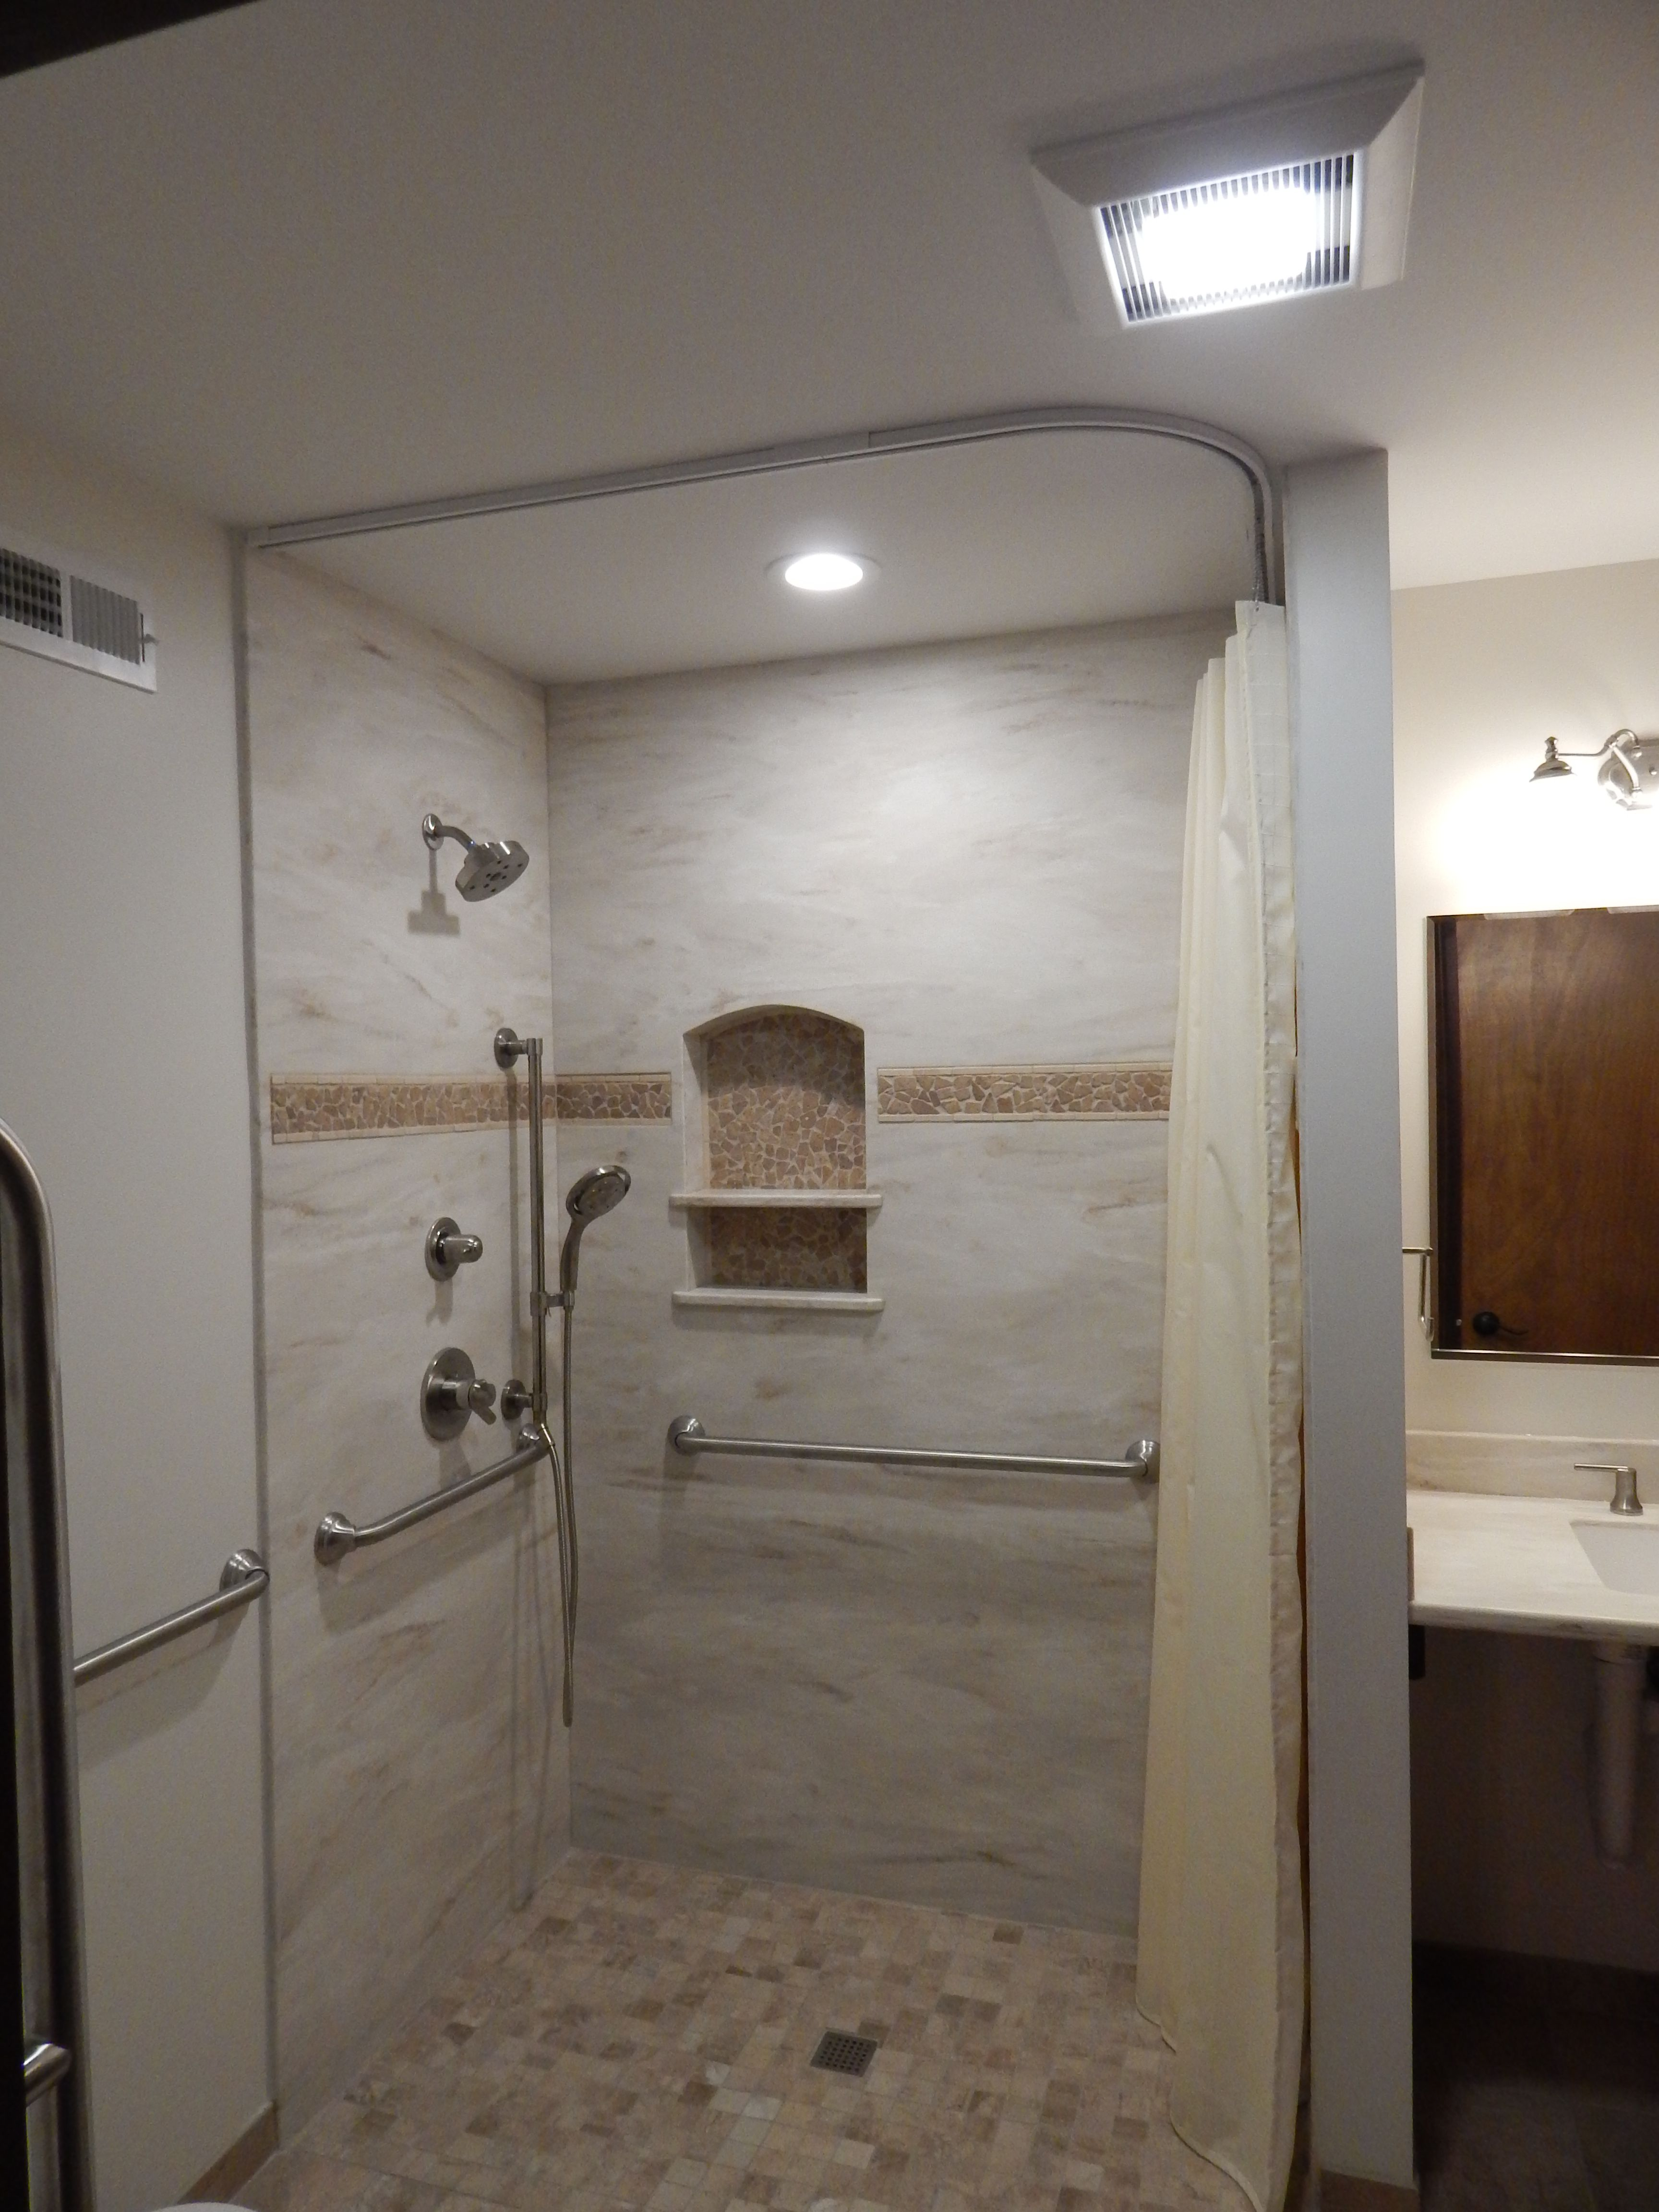 This Is Our Custom Build Zero Barrier Shower With Corian Wall Surround In The Color Witch Hazel A Corian Shower Walls Bathroom Remodel Master Bathrooms Remodel